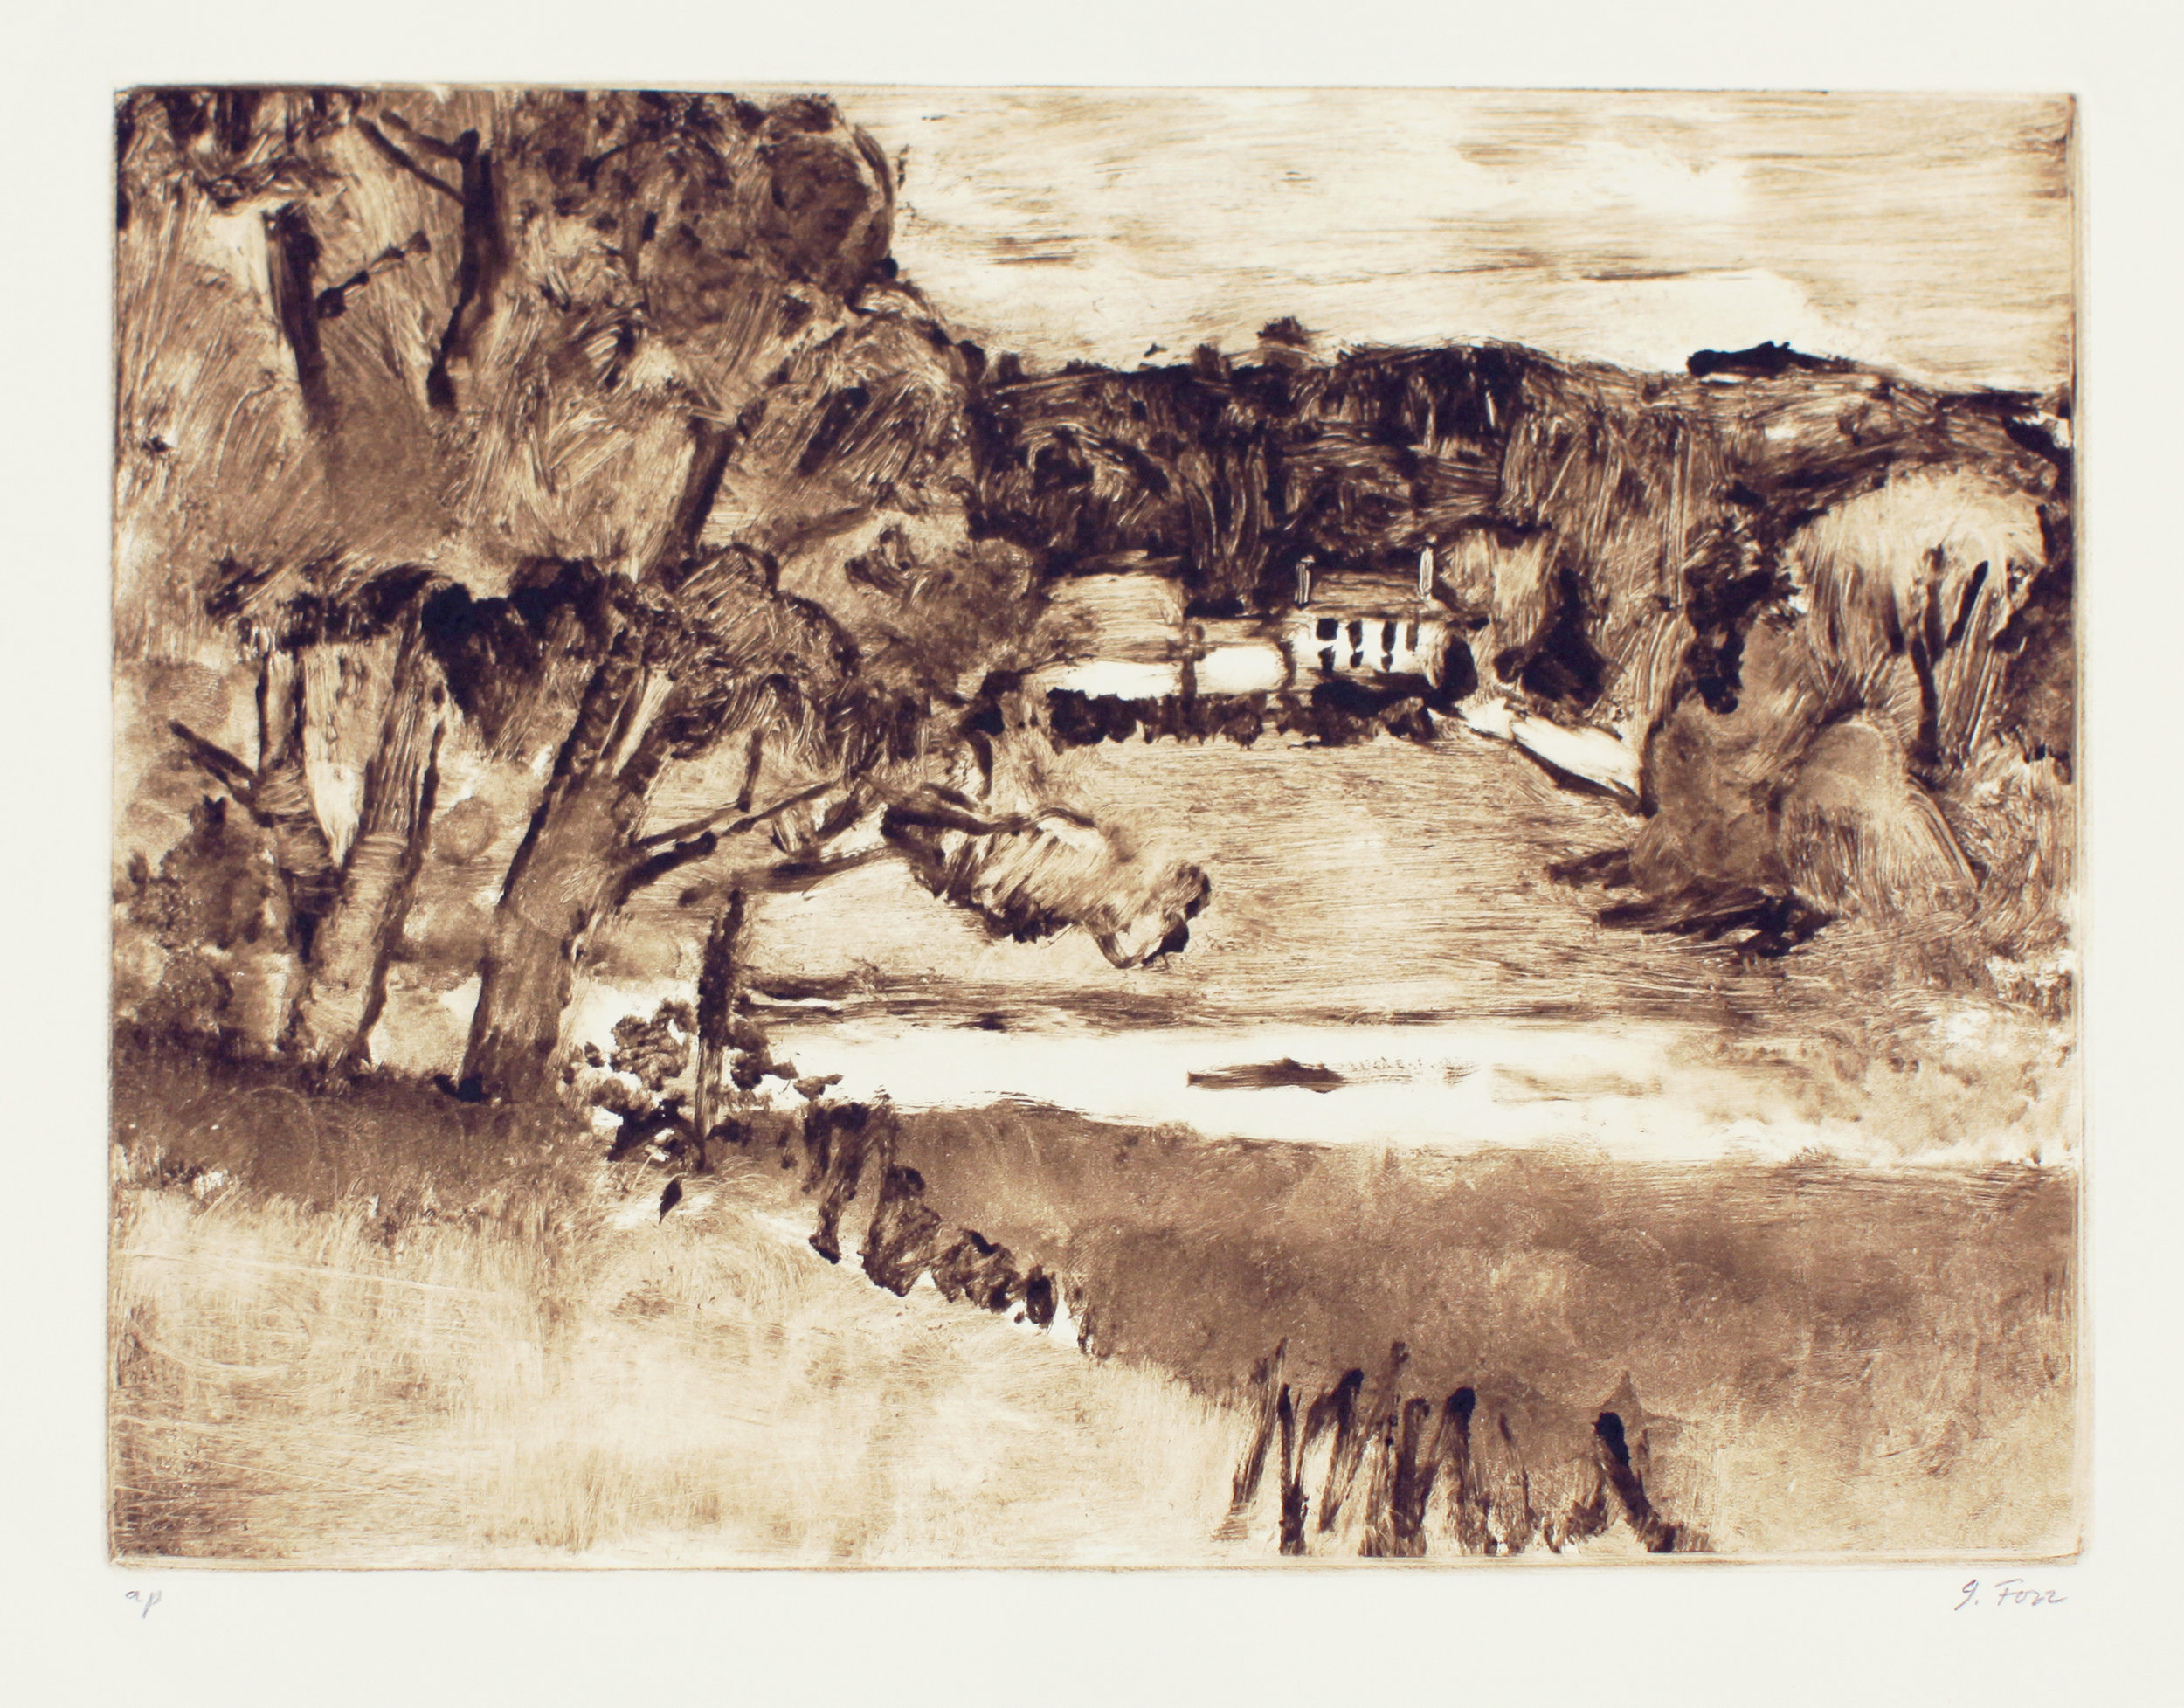 1991_Sheepscote_Maine_monotype_on_paper_25x19in_image_9x12in_ap_WPF442.jpg